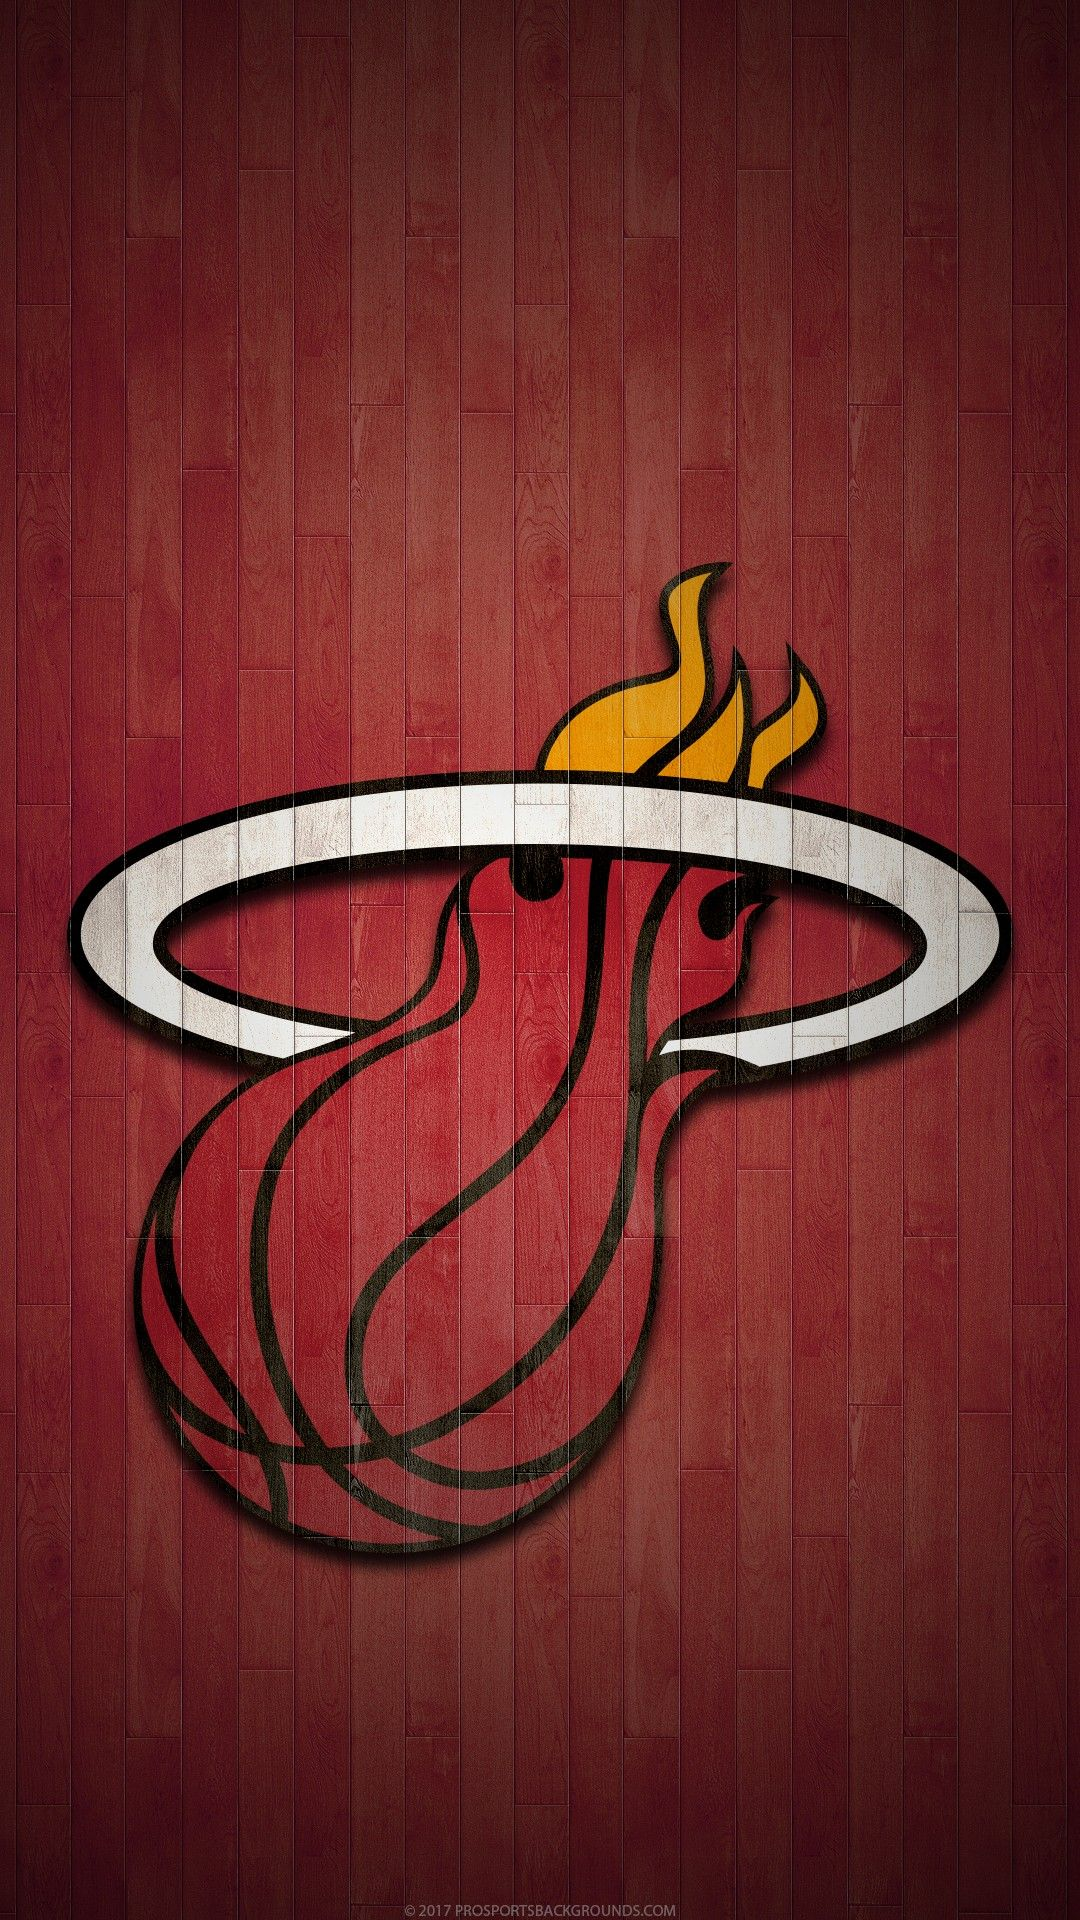 Best Of Miami Heat Wallpaper Iphone 6 Nba Wallpapers Nba Basketball Art Basketball Players Nba